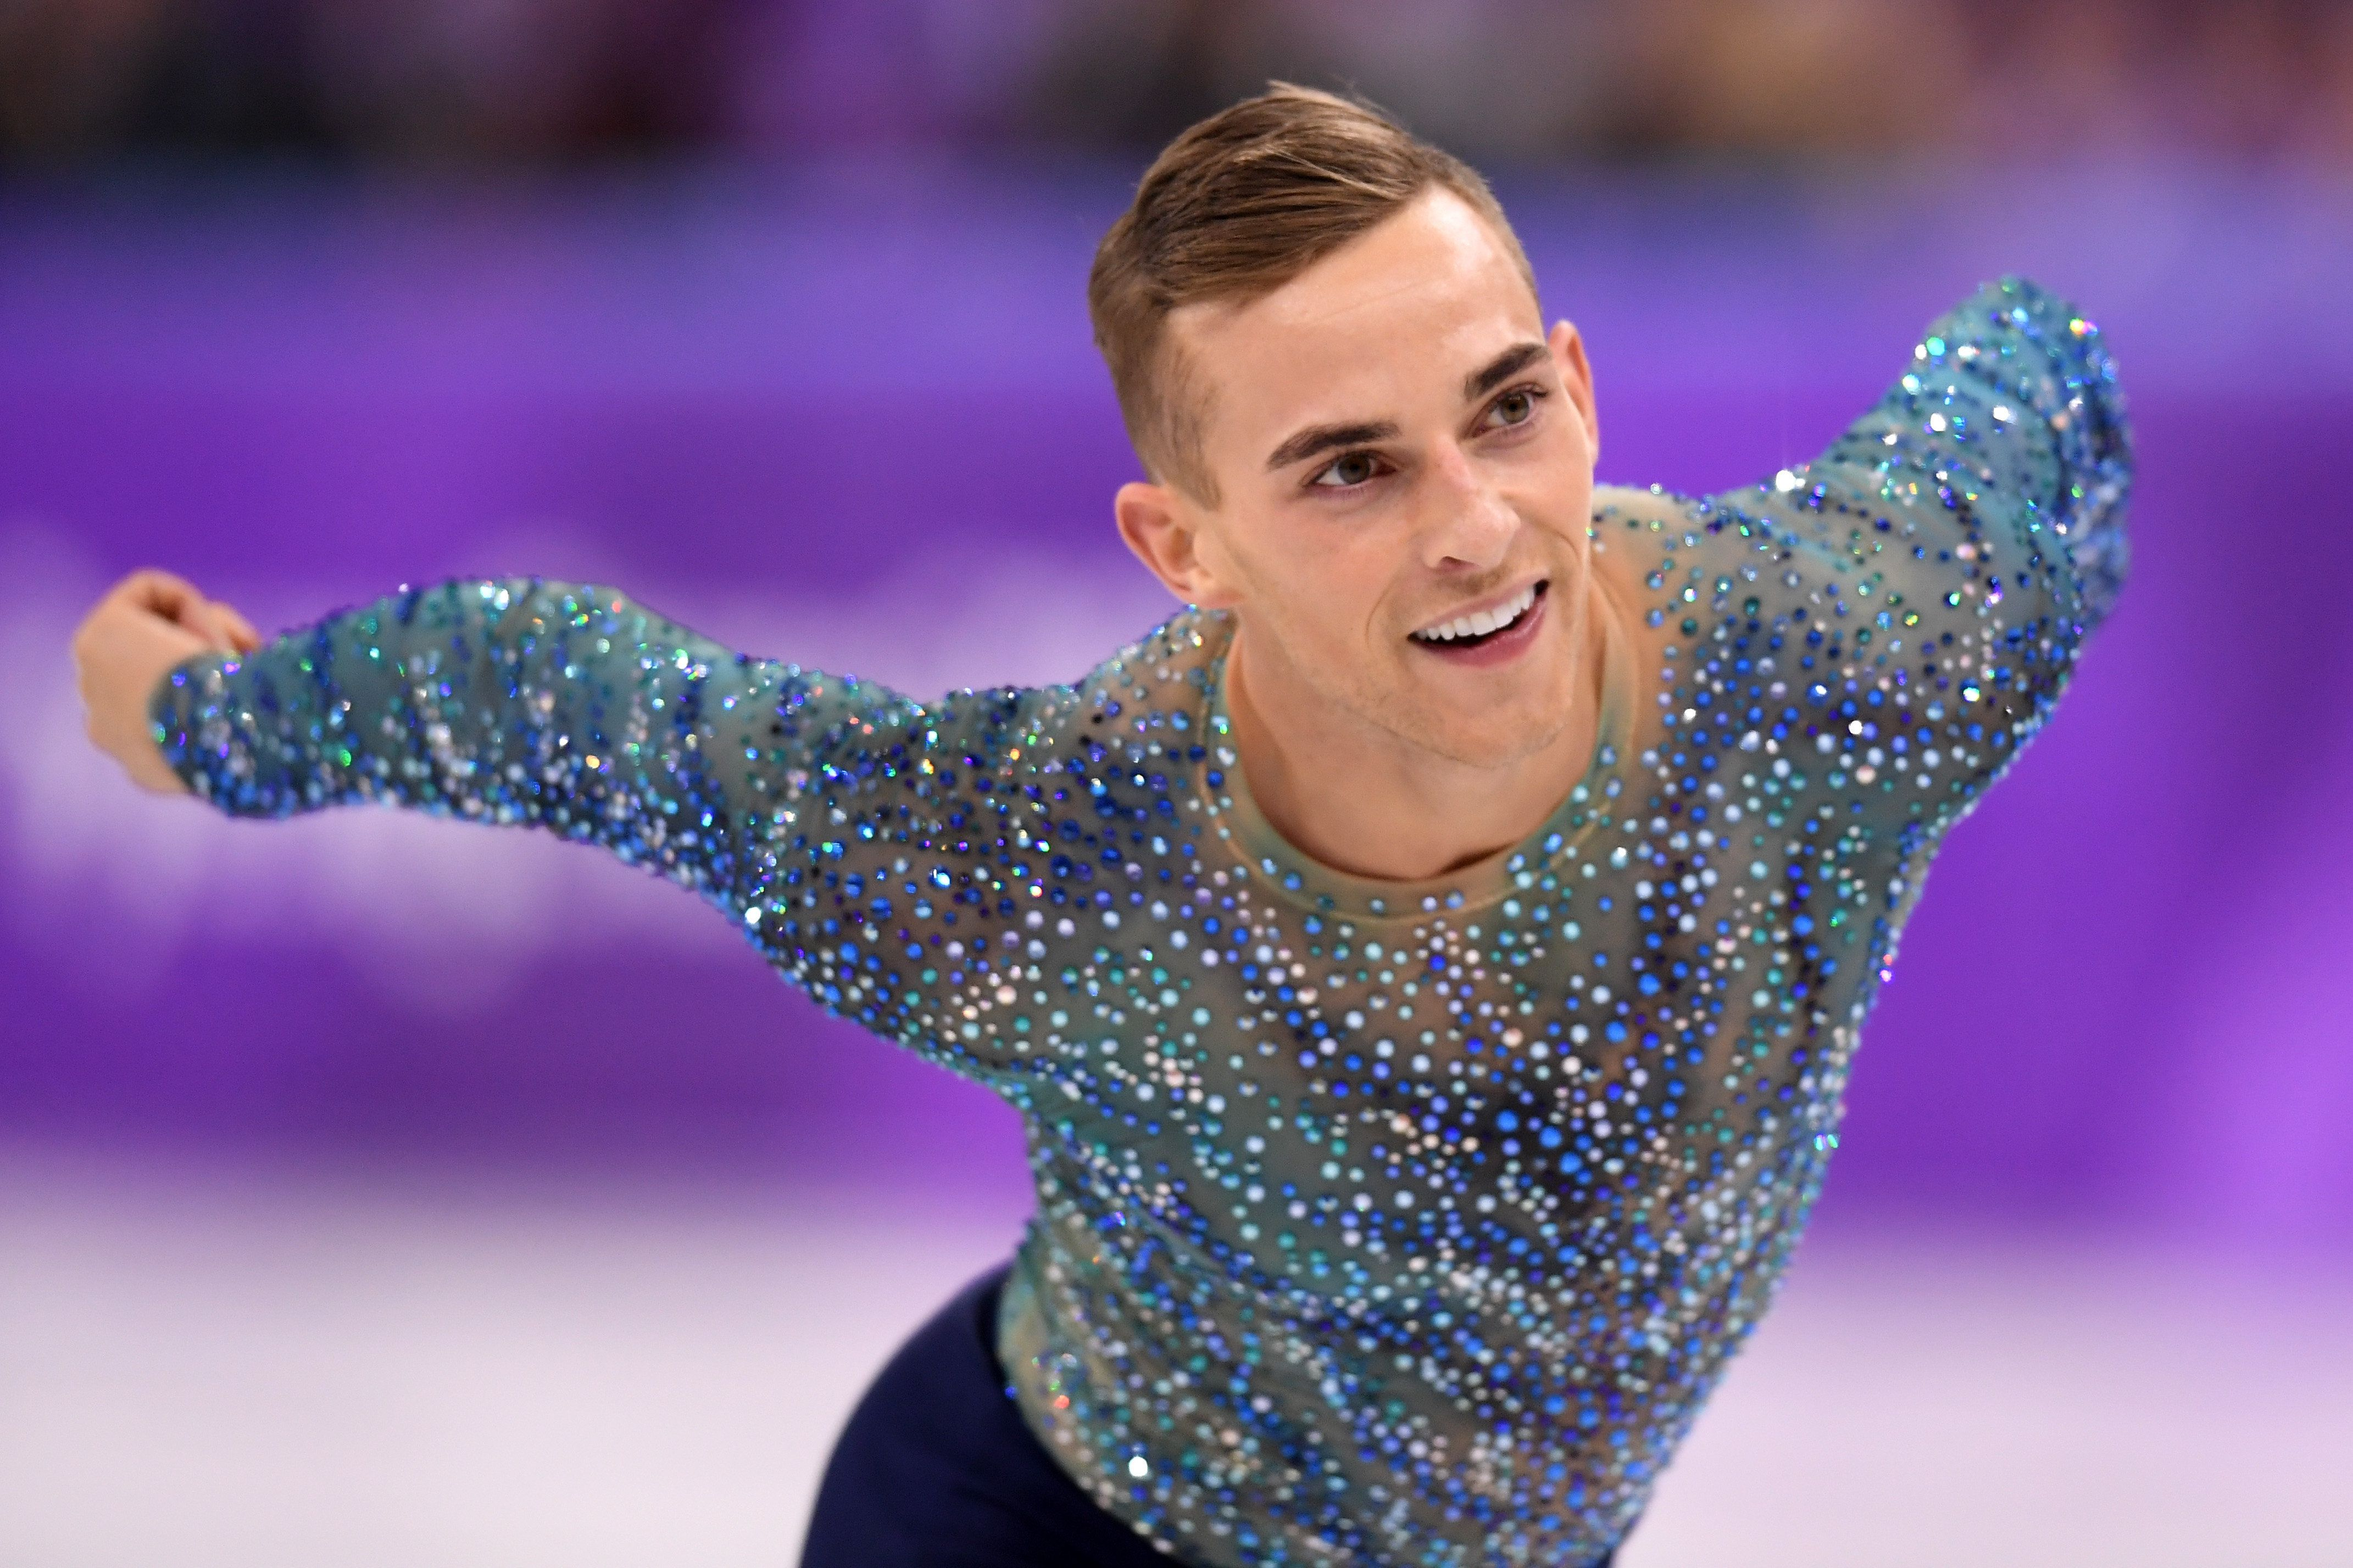 GANGNEUNG, SOUTH KOREA - FEBRUARY 17:  Adam Rippon of the United States competes during the Men's Single Free Program on day eight of the PyeongChang 2018 Winter Olympic Games  at Gangneung Ice Arena on February 17, 2018 in Gangneung, South Korea.  (Photo by Harry How/Getty Images)